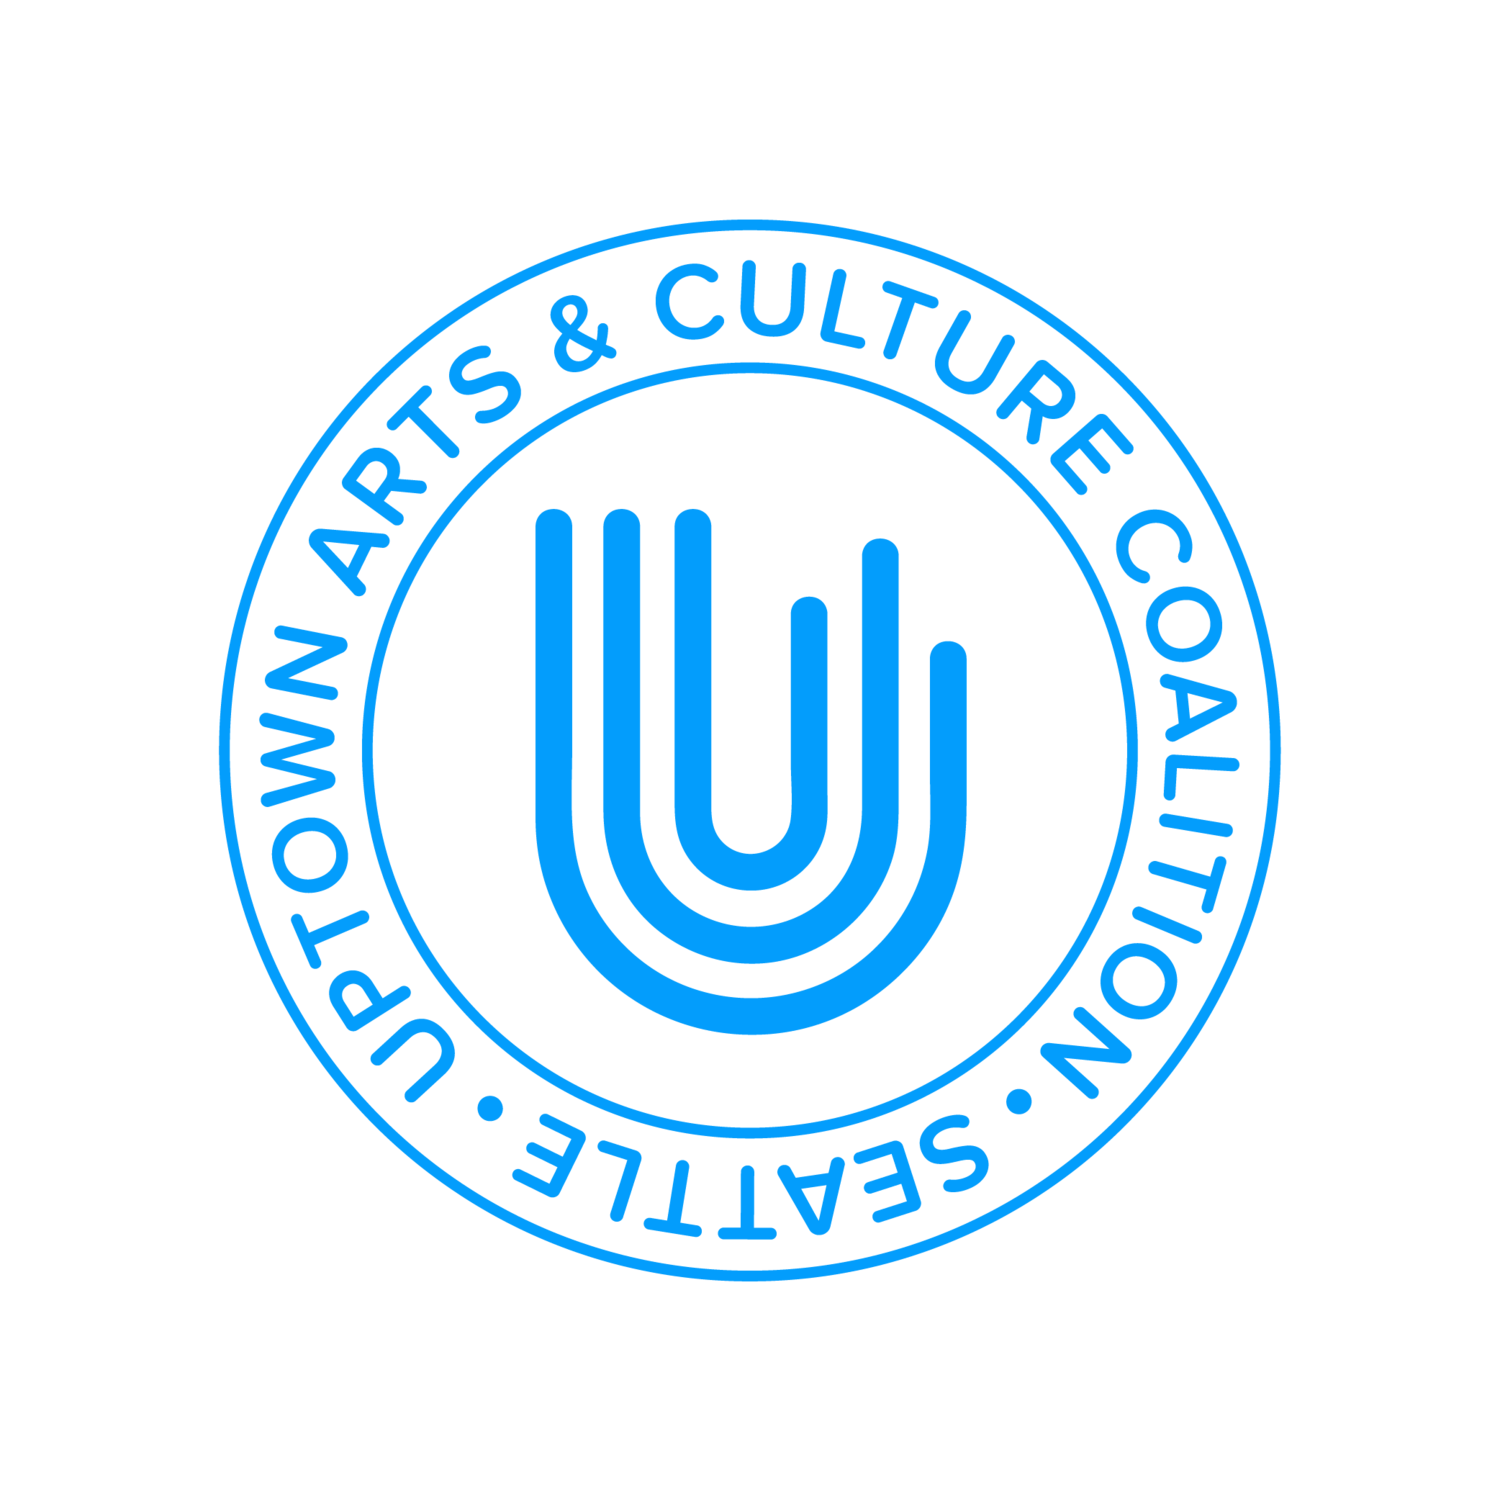 Uptown Arts & Culture Coalition